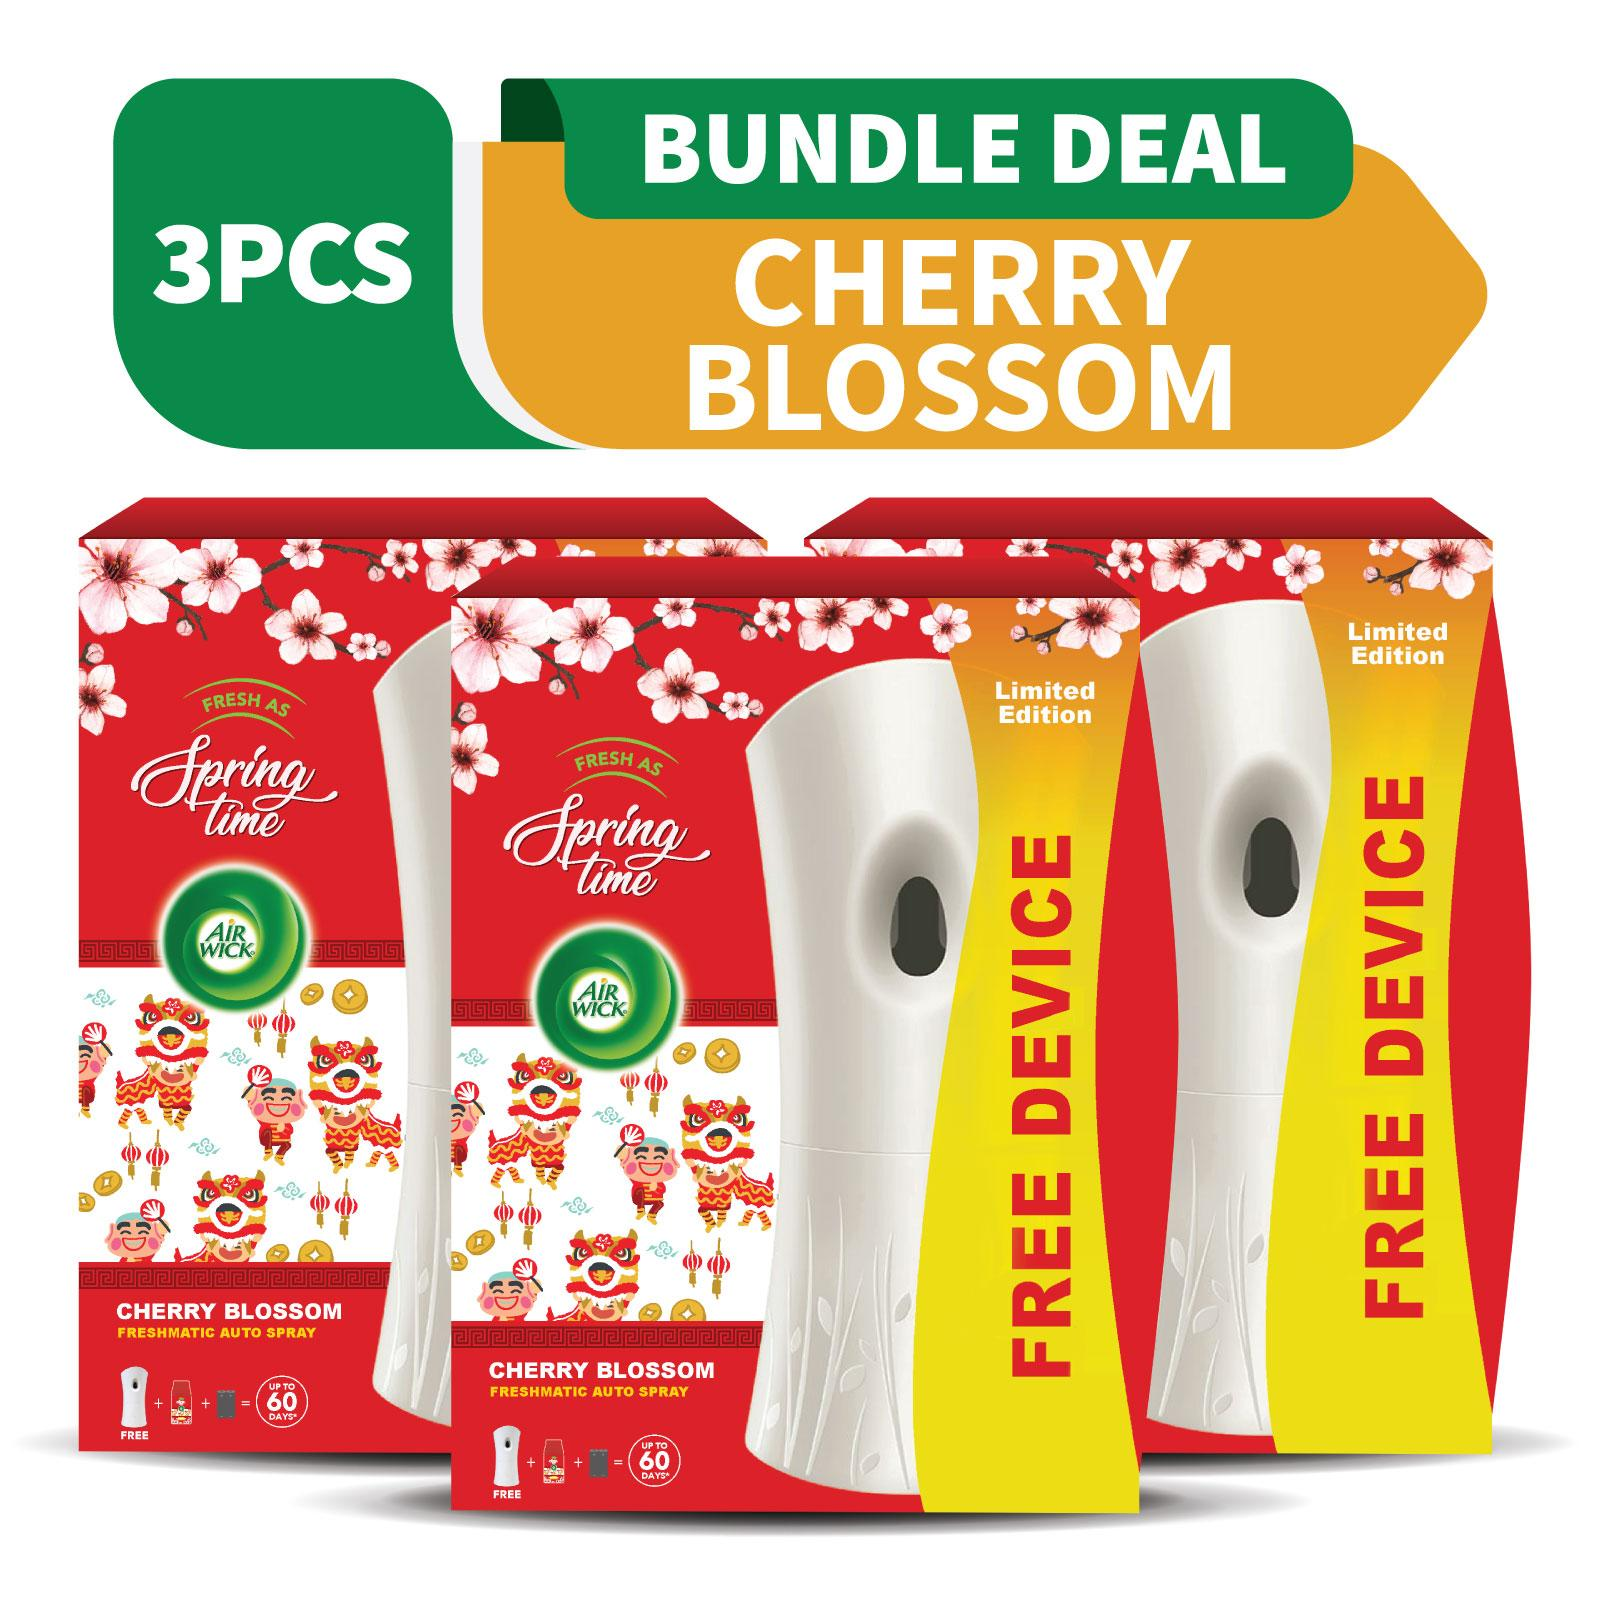 Air Wick Fresh as Spring Time Freshmatic Refill Cherry Blossom + Free Gadget - Bundle of 3